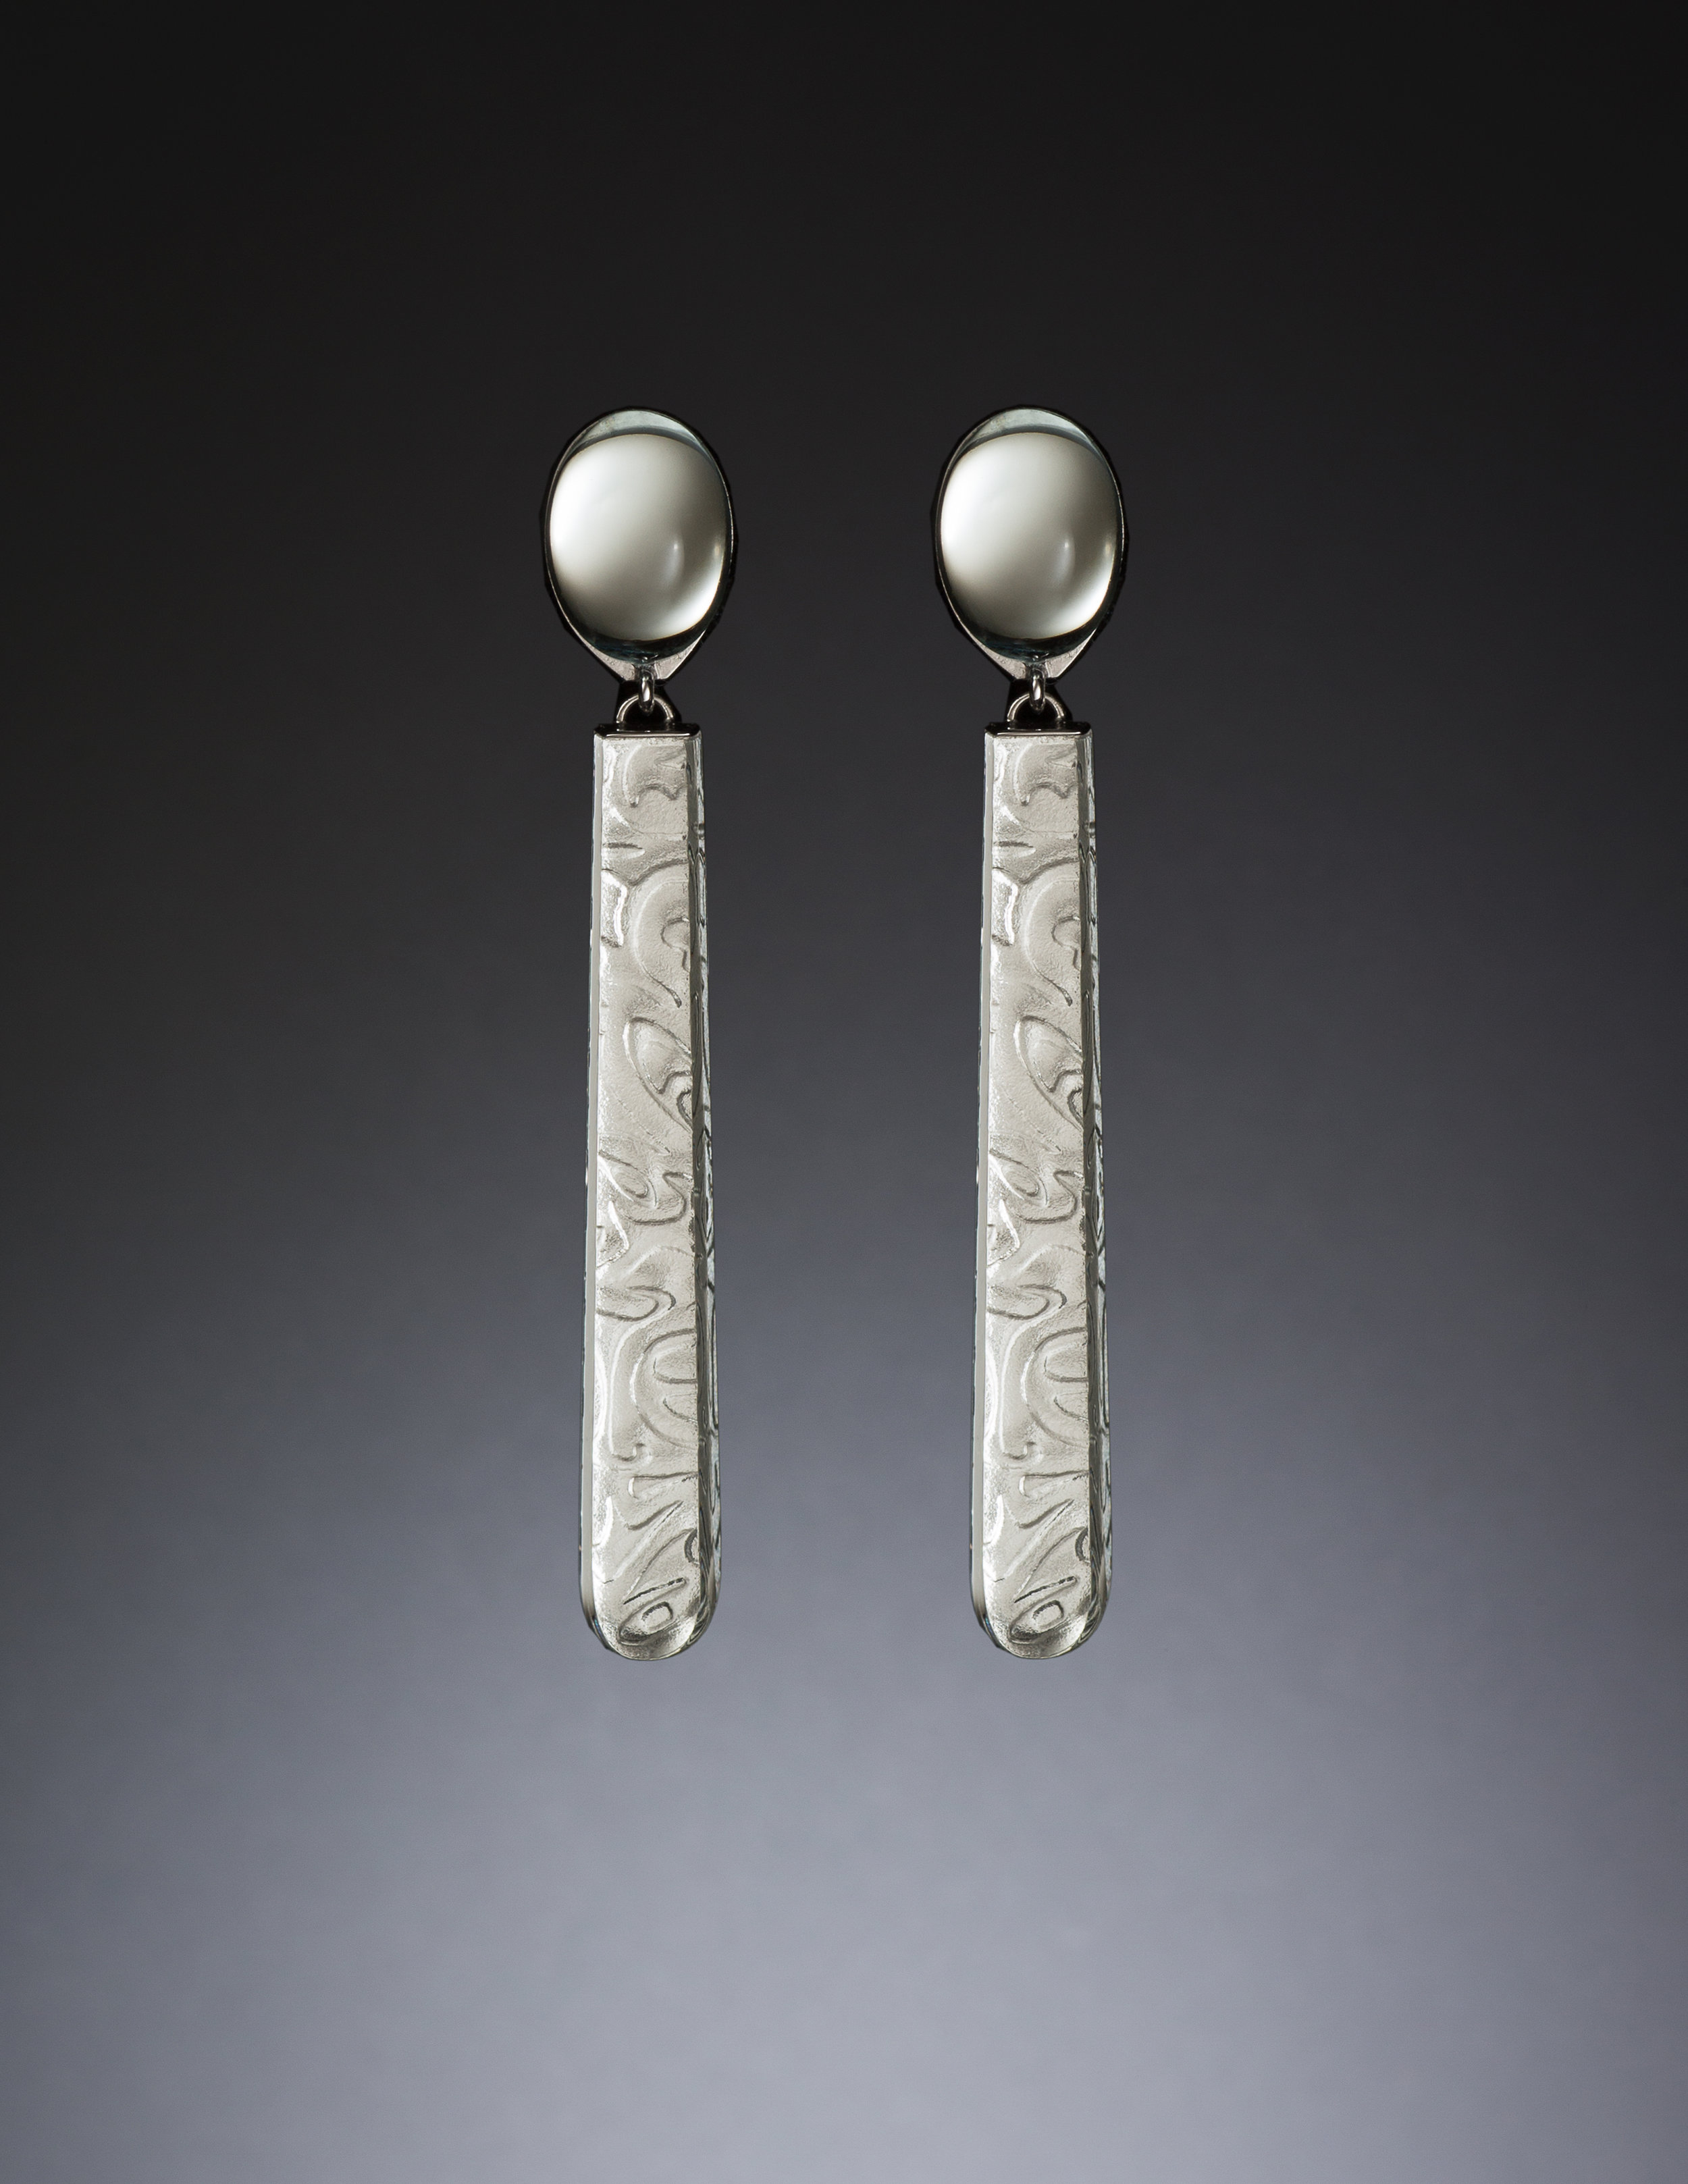 Mirrored Earrings No. 15,  2015. Linda MacNeil (American, born 1954). Plate glass, mirror, and rhodium-plated 14k white gold; 2 5/8 x 1/4 x 1/4 in. Courtesy of the artist. Photo by Bill Truslow Photography.